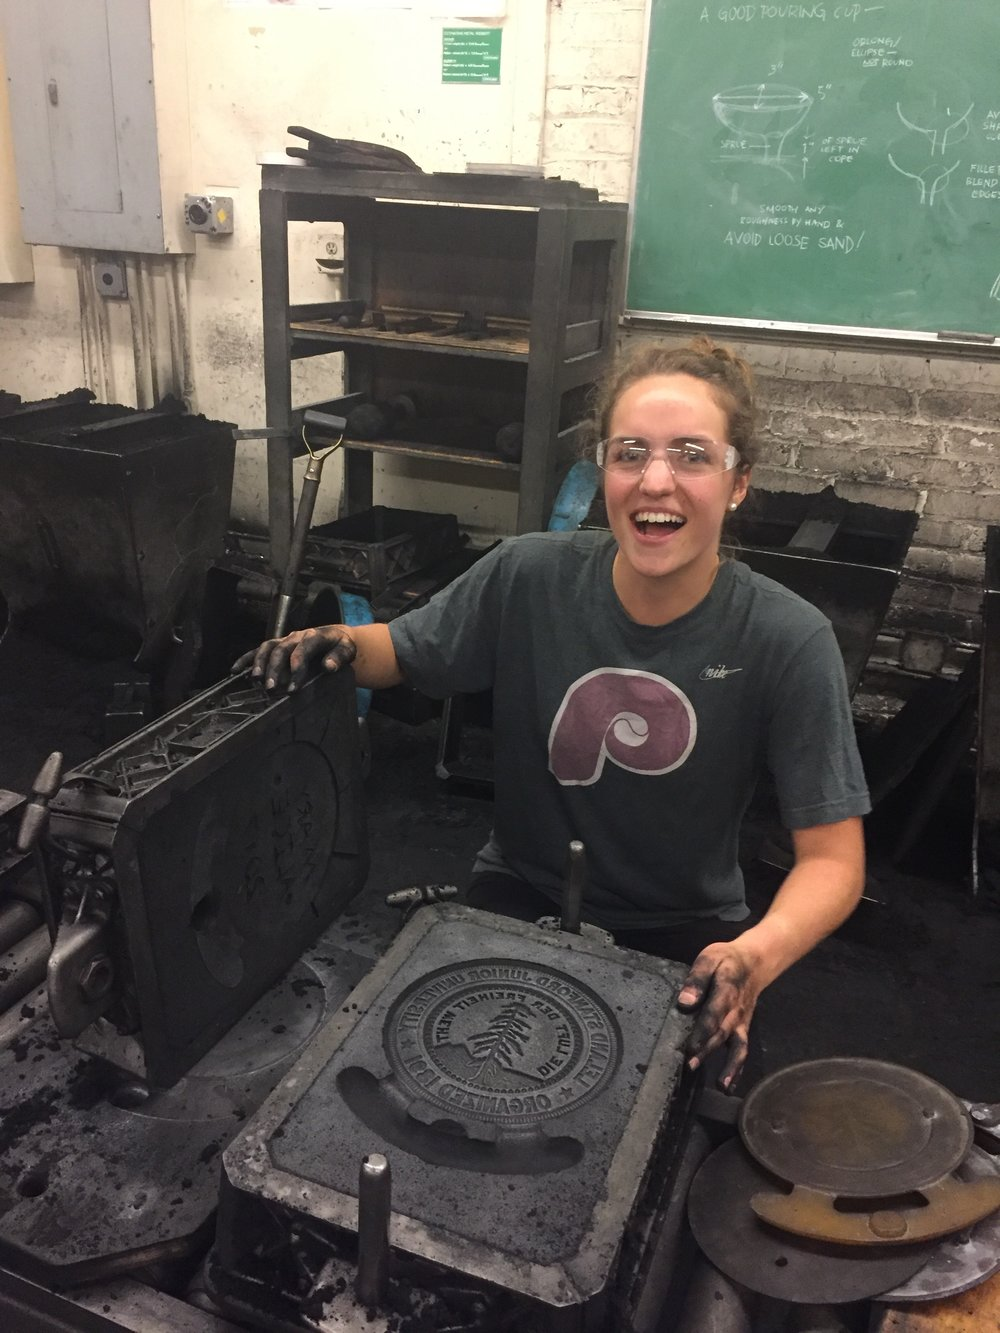 The Stanford Seal was my first sand casting project. Since the molds are heavy, you need a partner to help you lift and turn the sand molds (as my peer Greta demonstrates). I mastered the process of ramming up a mold and paid attention to manufacturing process limitations, such as wall thickness and strategically placing a gate and runner for the metal to flow into.